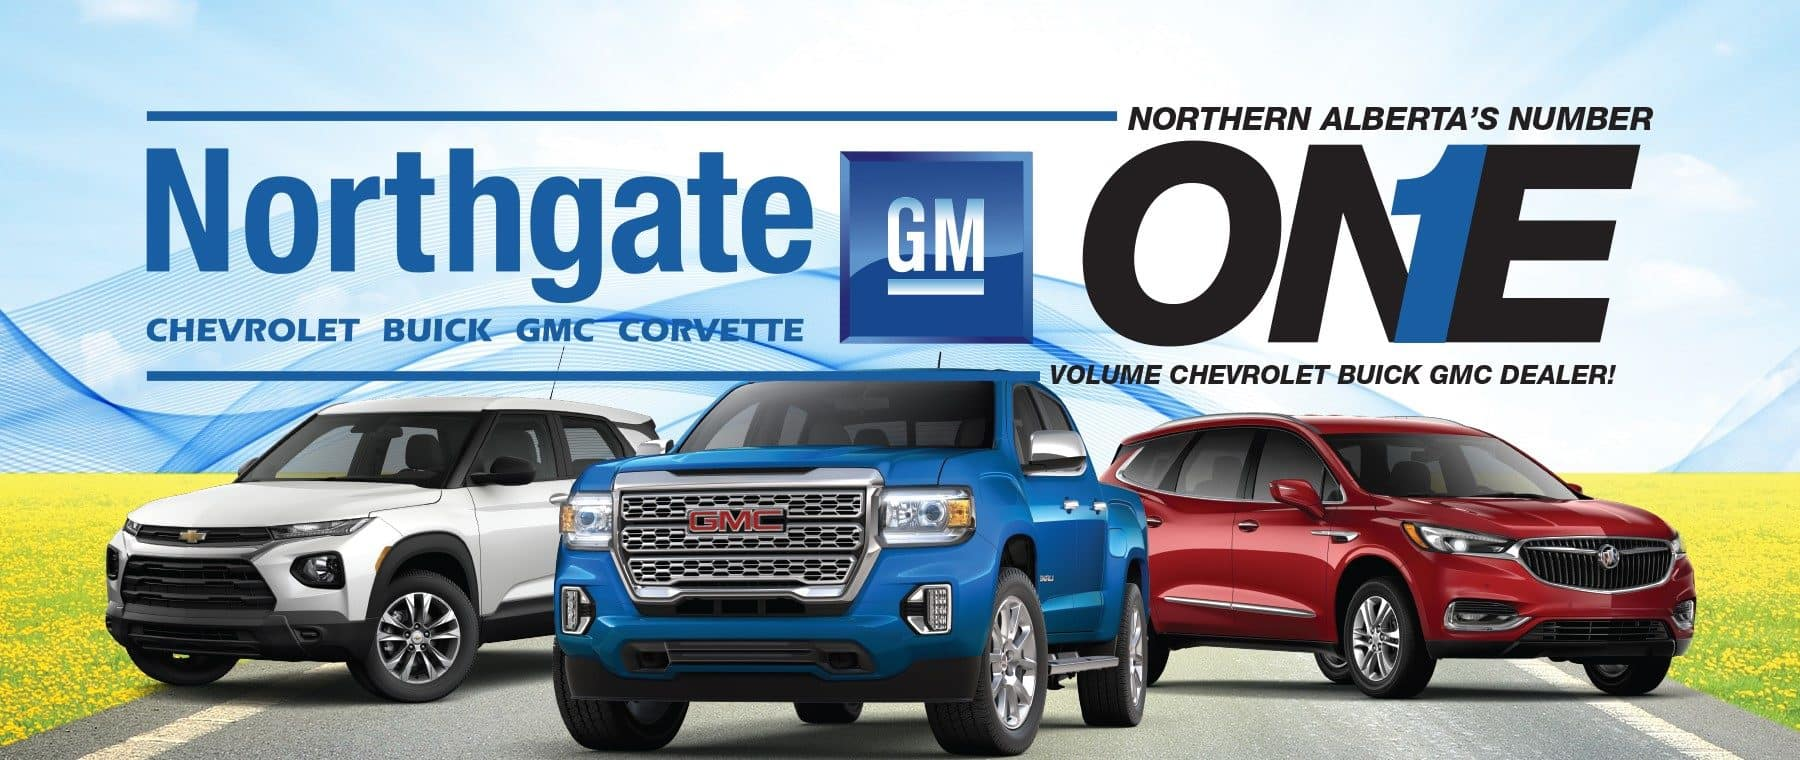 Northgate GM is Number One